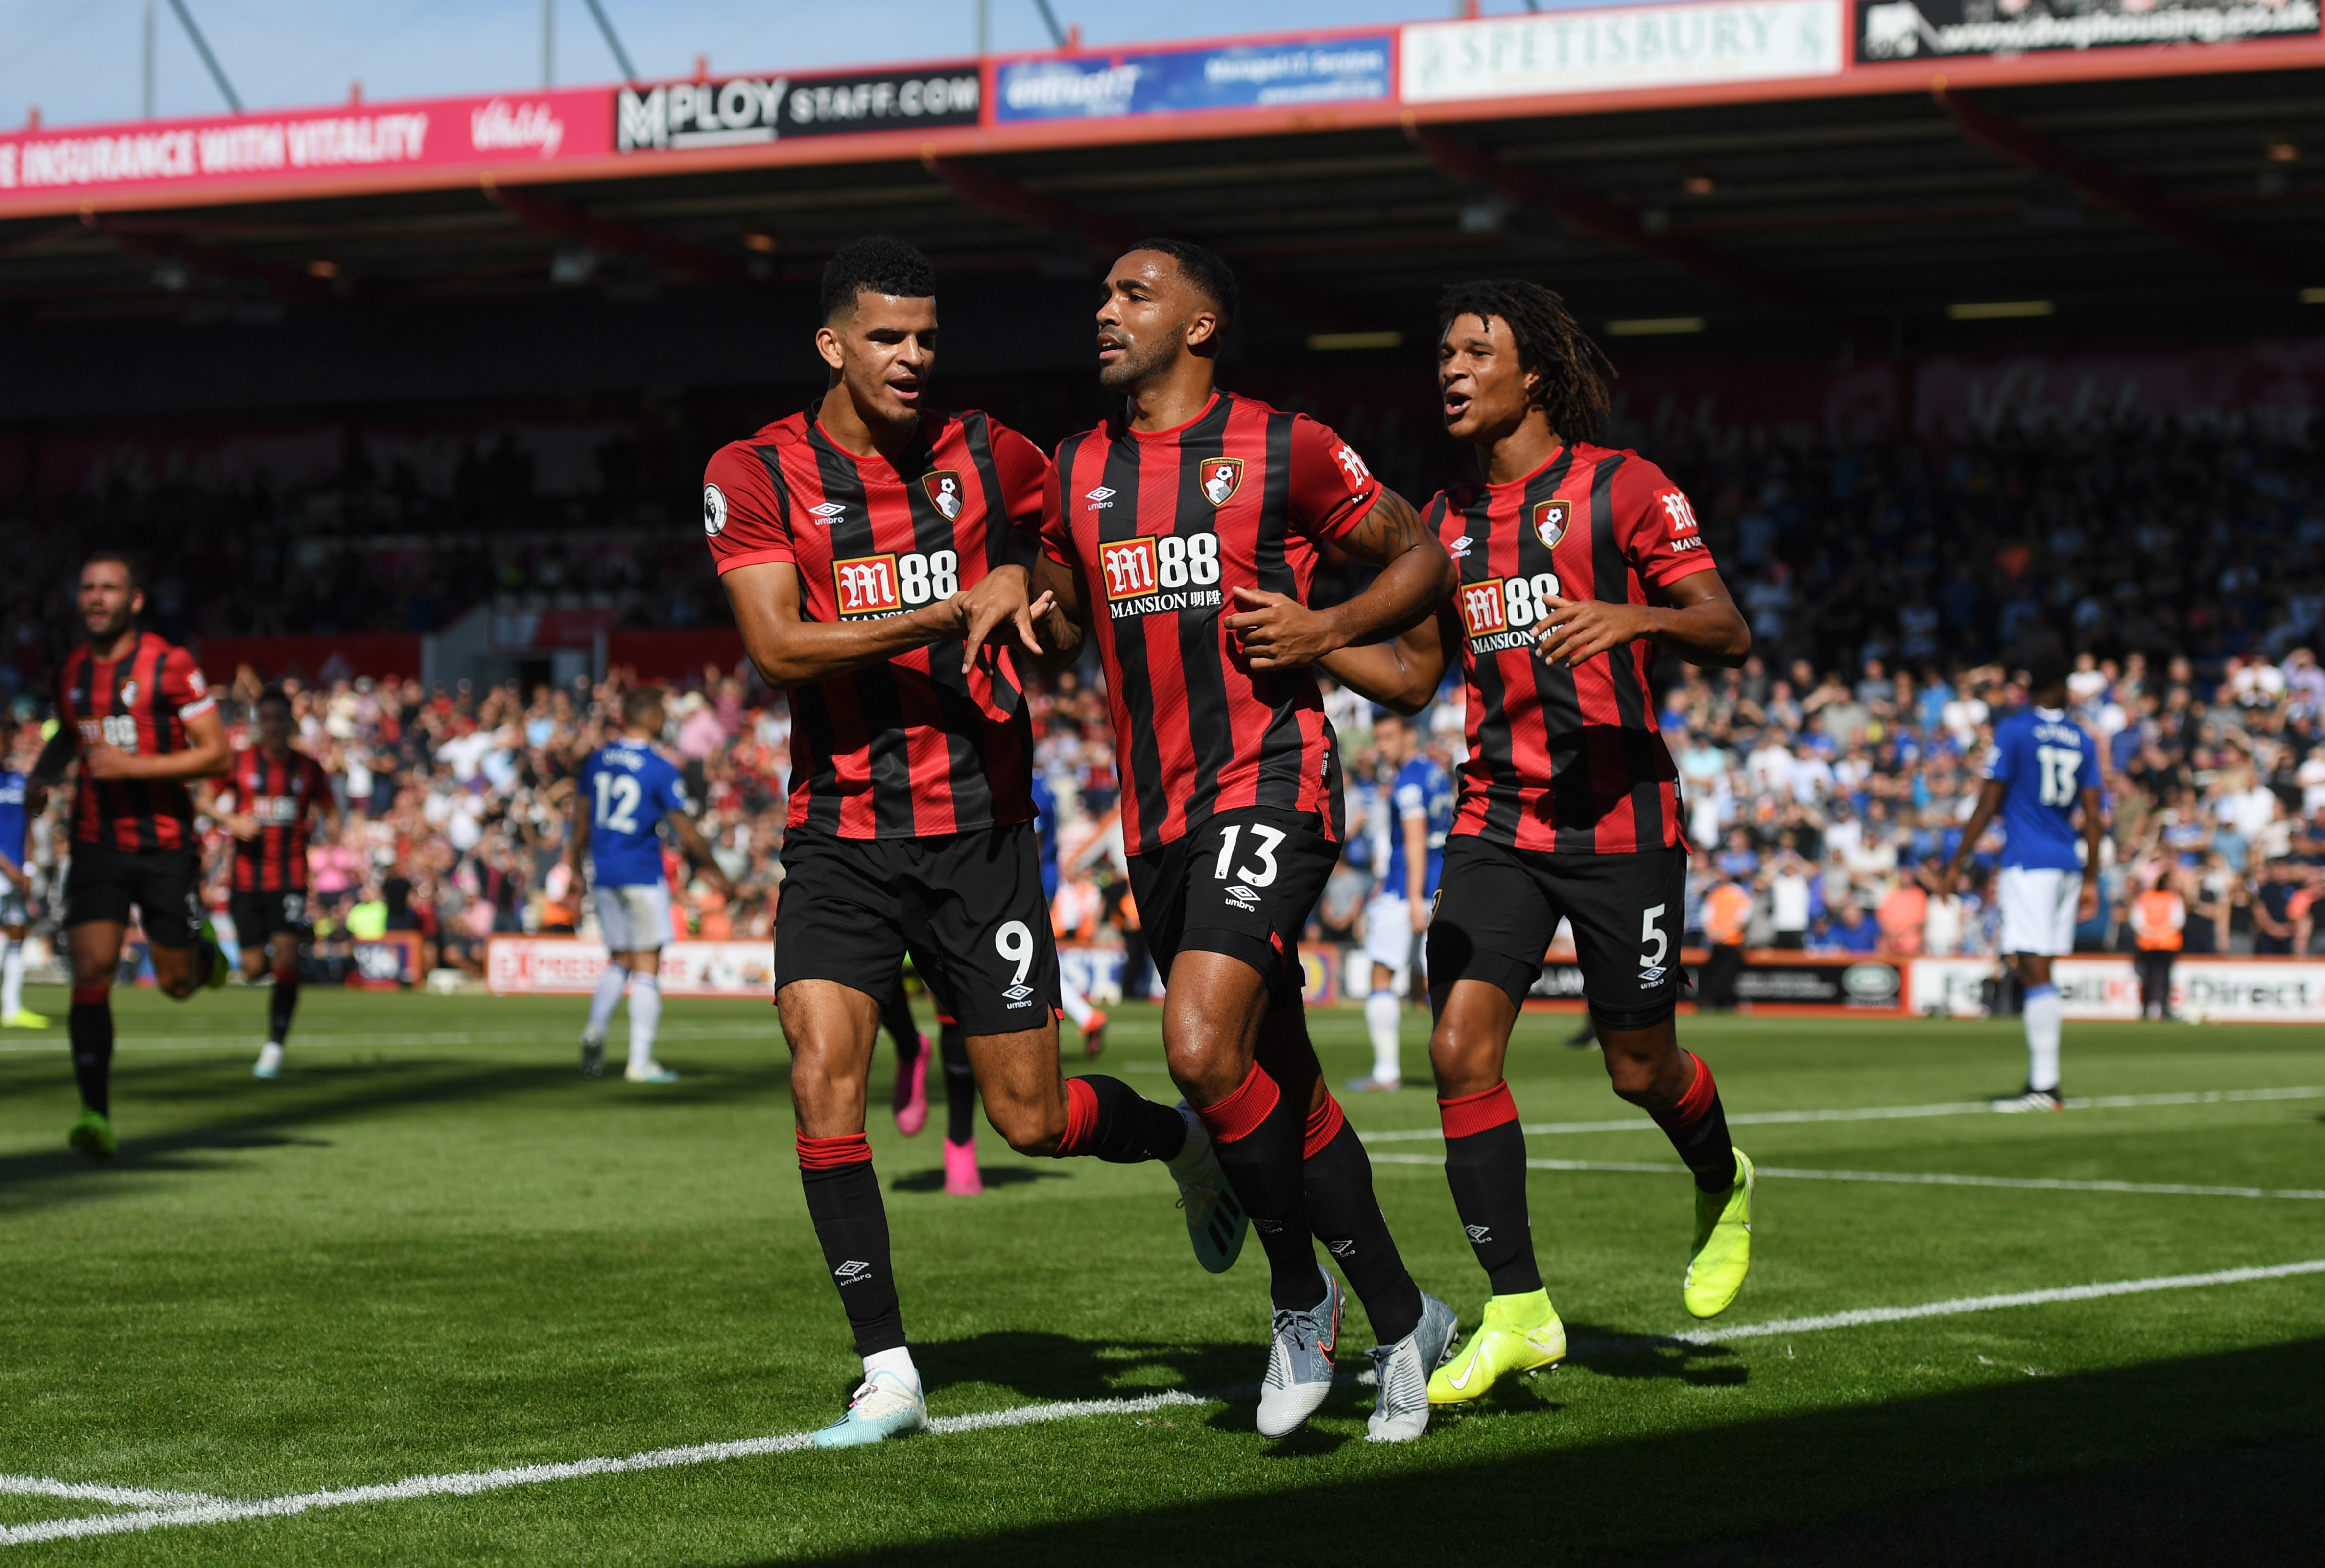 Bournemouth 3-1 Everton: Instant reaction - Toffees crumble to woeful defeat